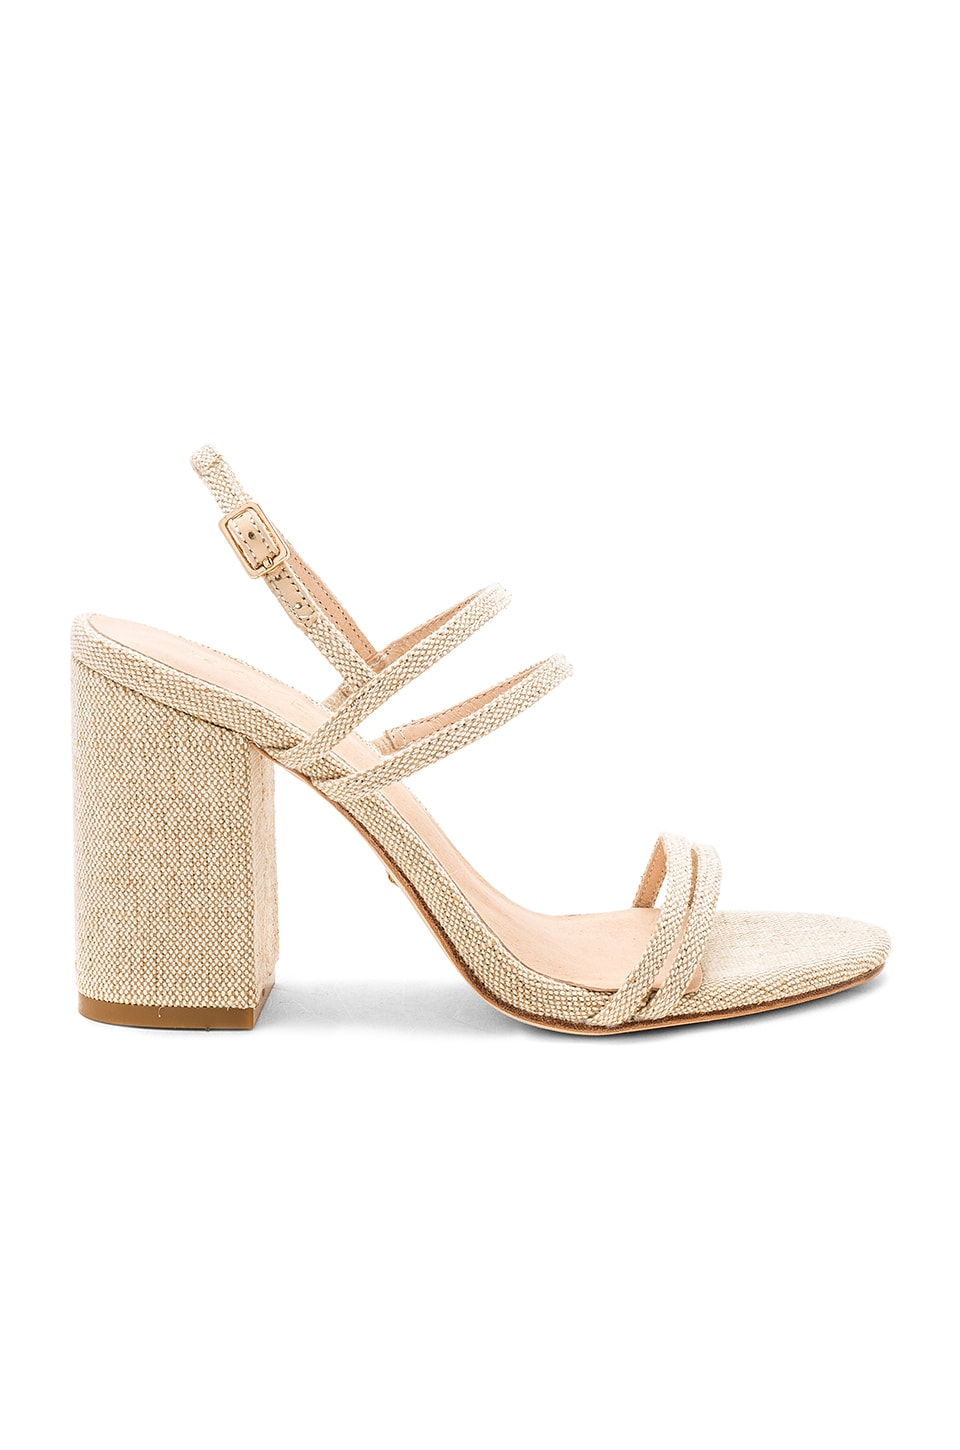 RAYE Limone Heel in Natural